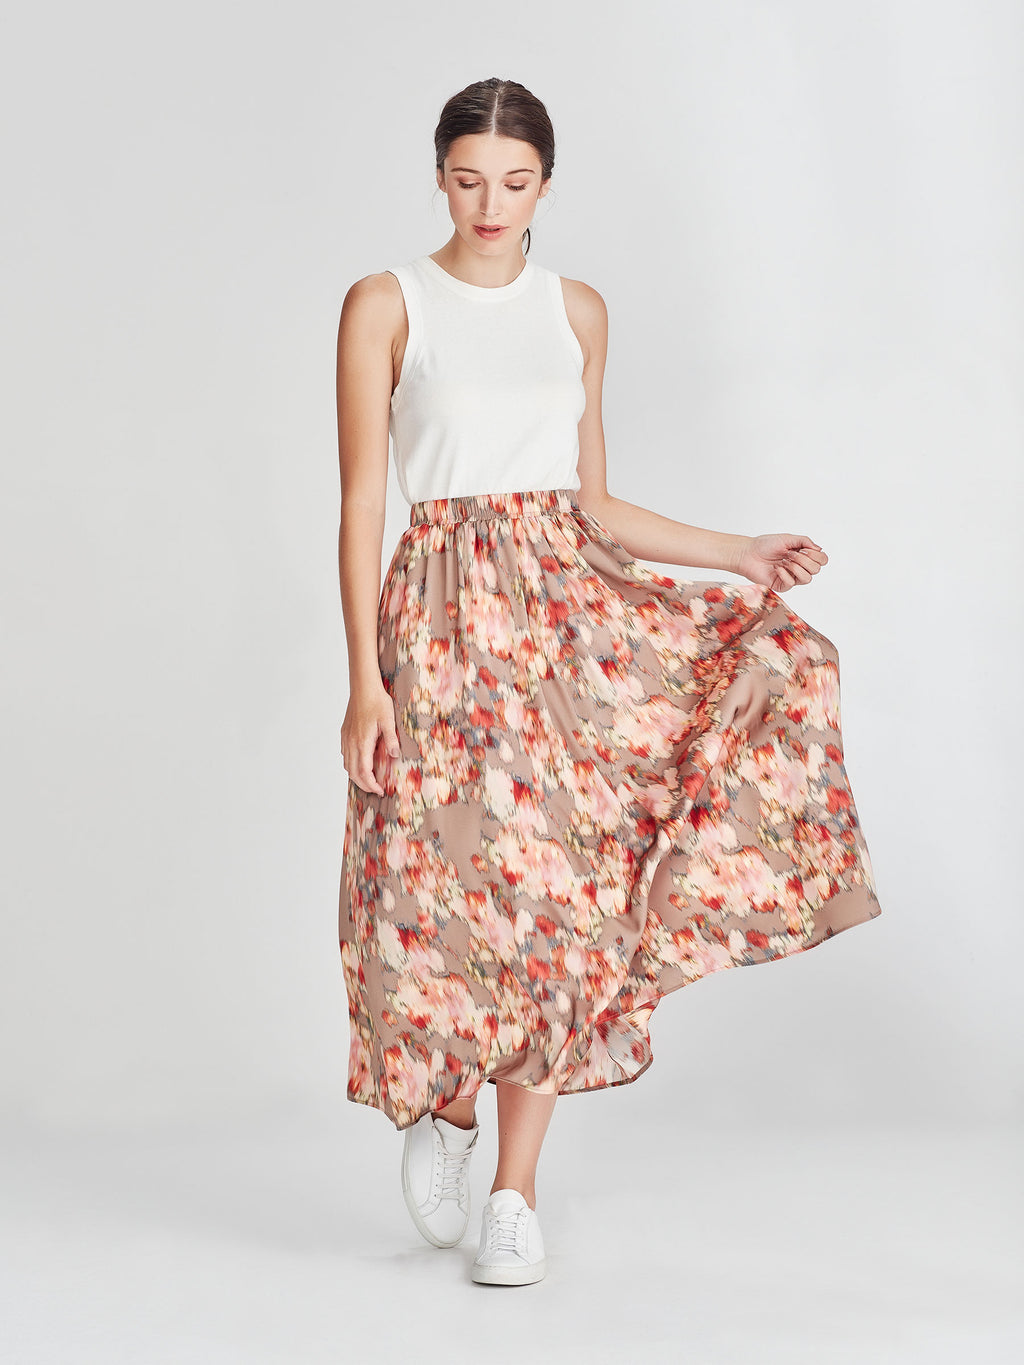 Arcade Skirt (Floral Shift) Tapestry